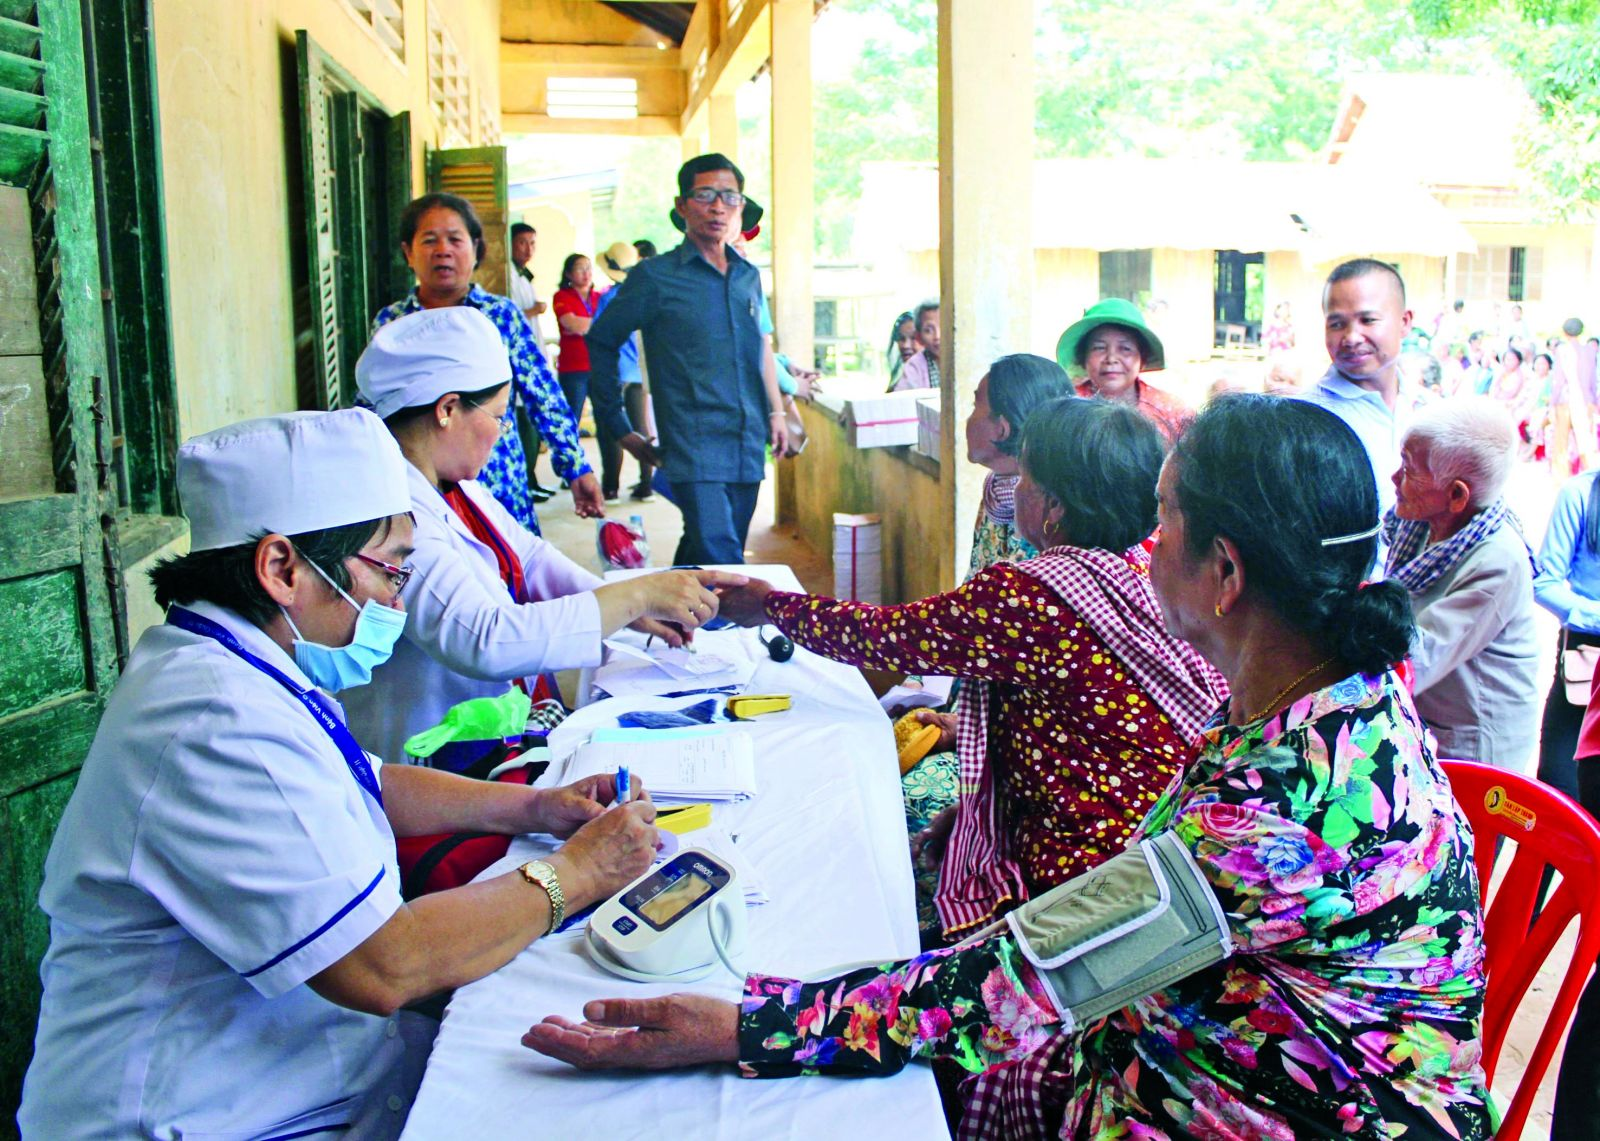 Free medical examination and medicine delivery to people